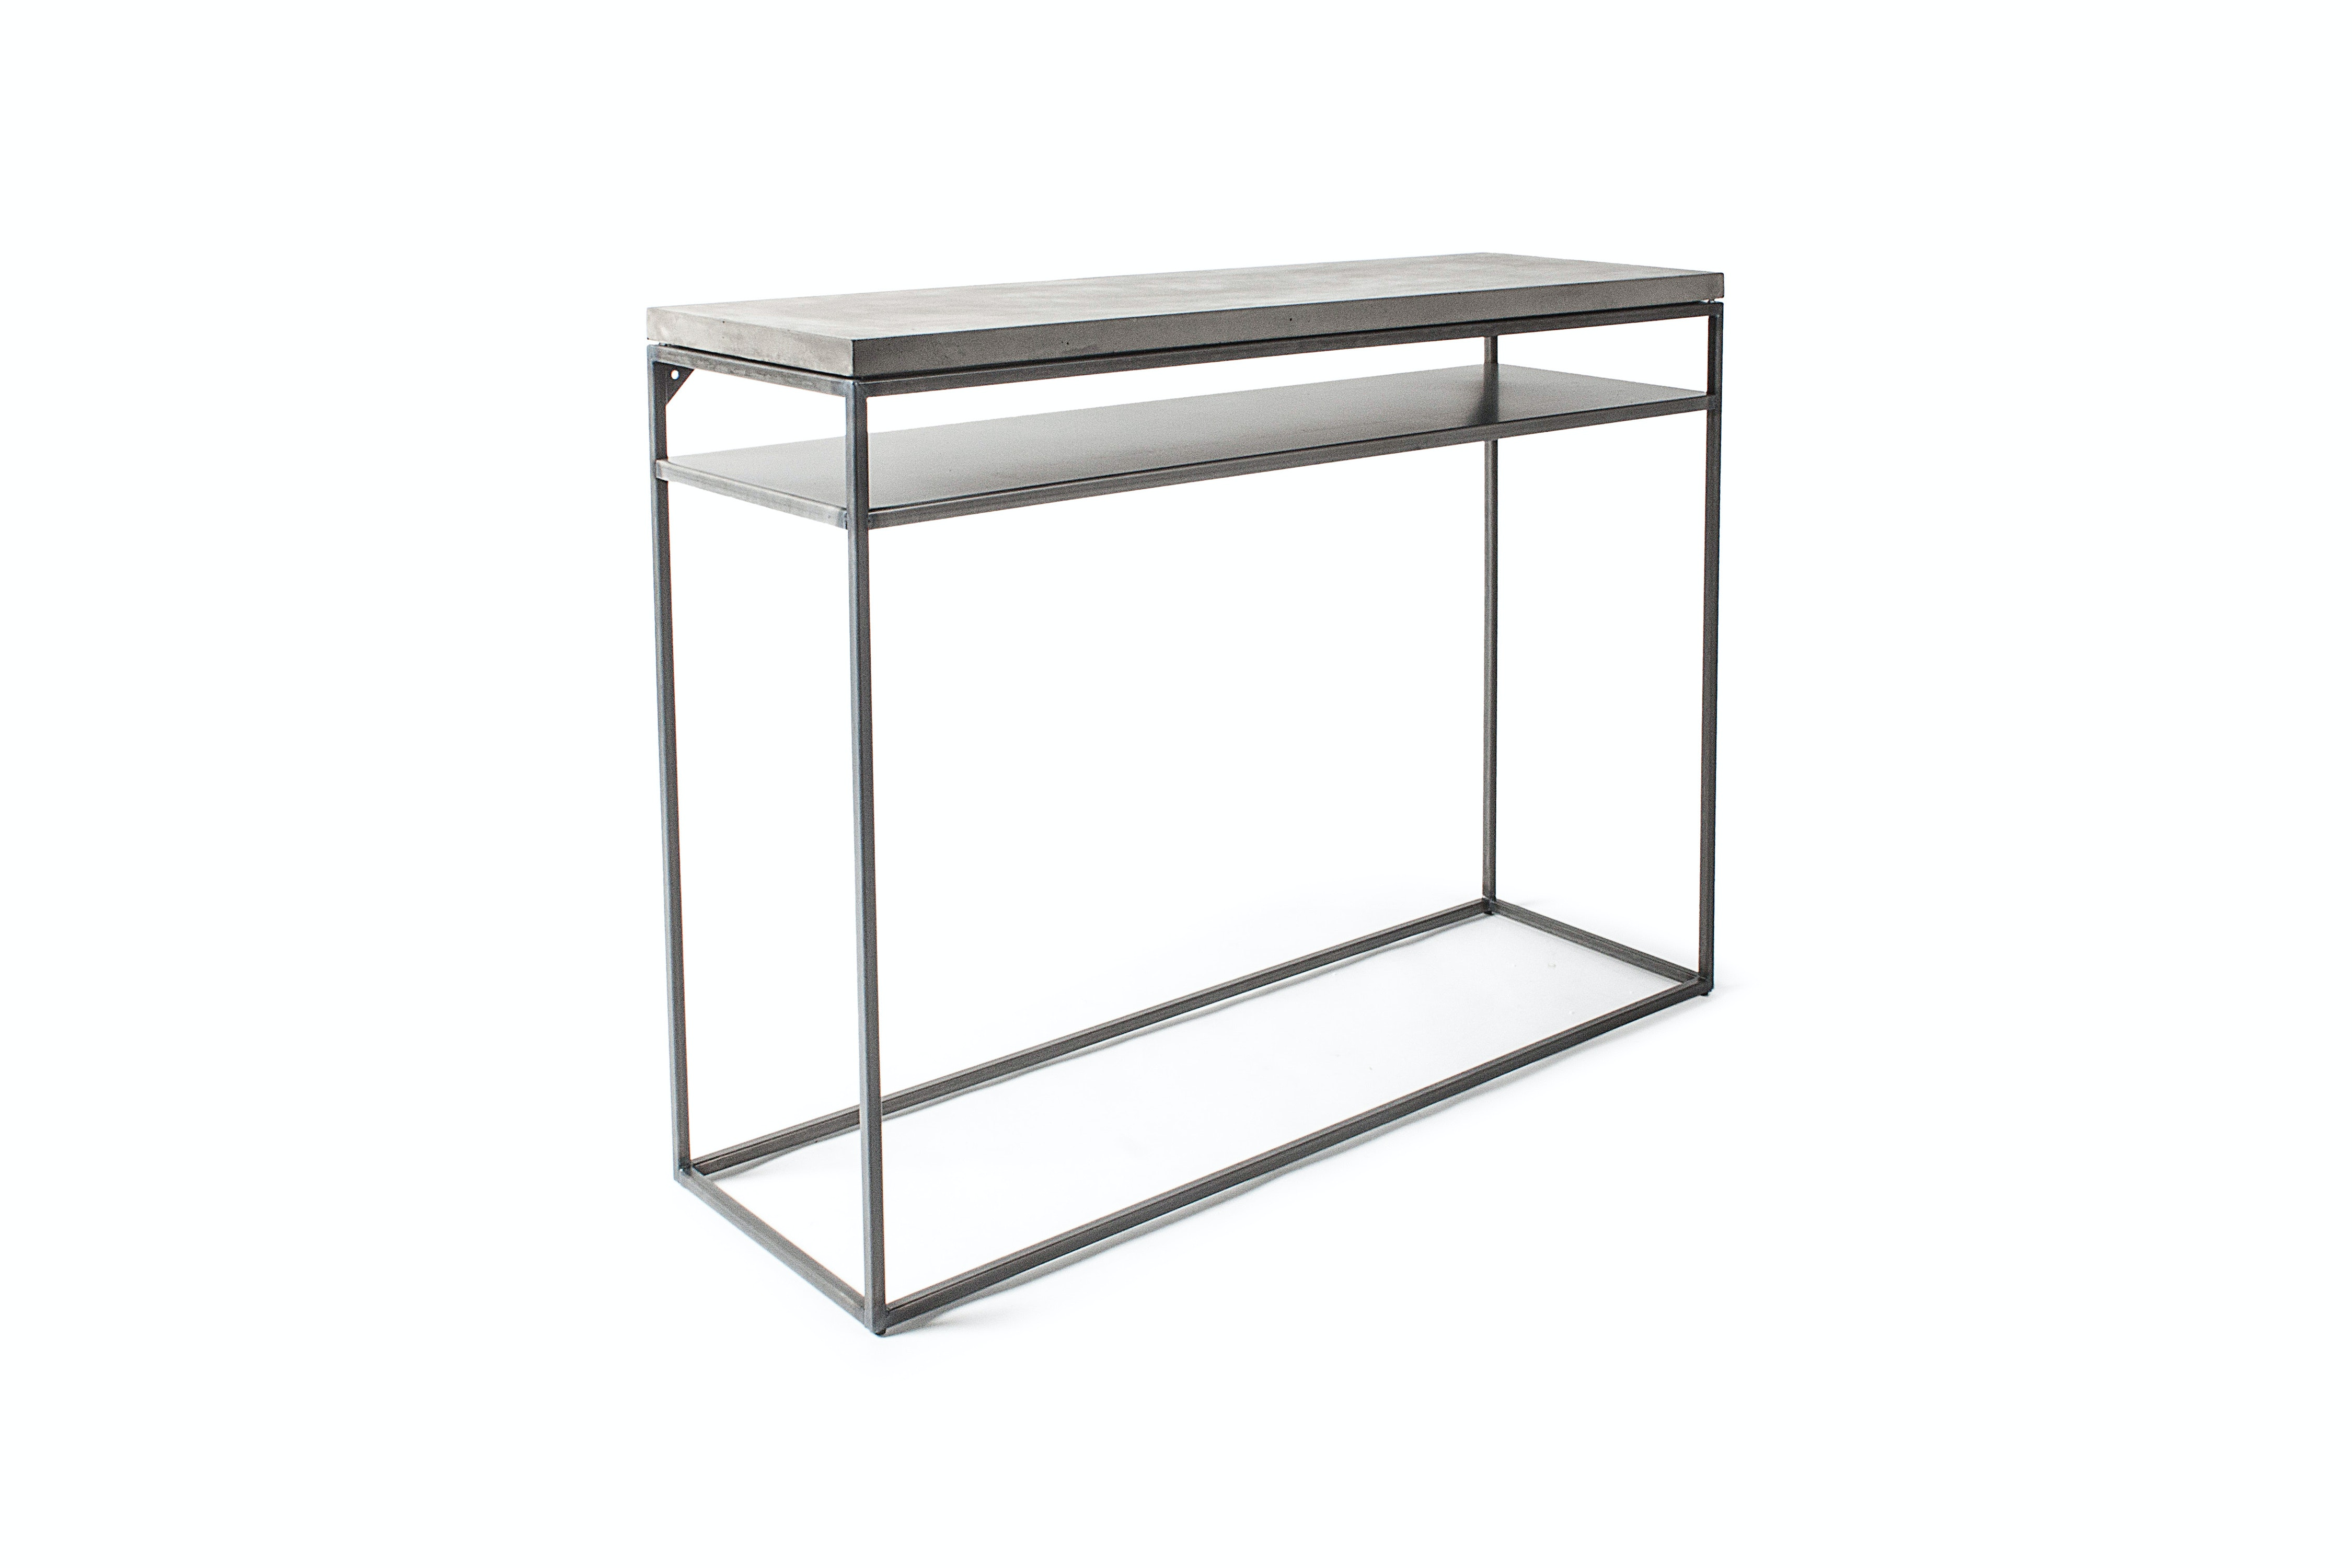 D 09152 Pe 002 Or D 09160 Perspective Console With Shelf 00011